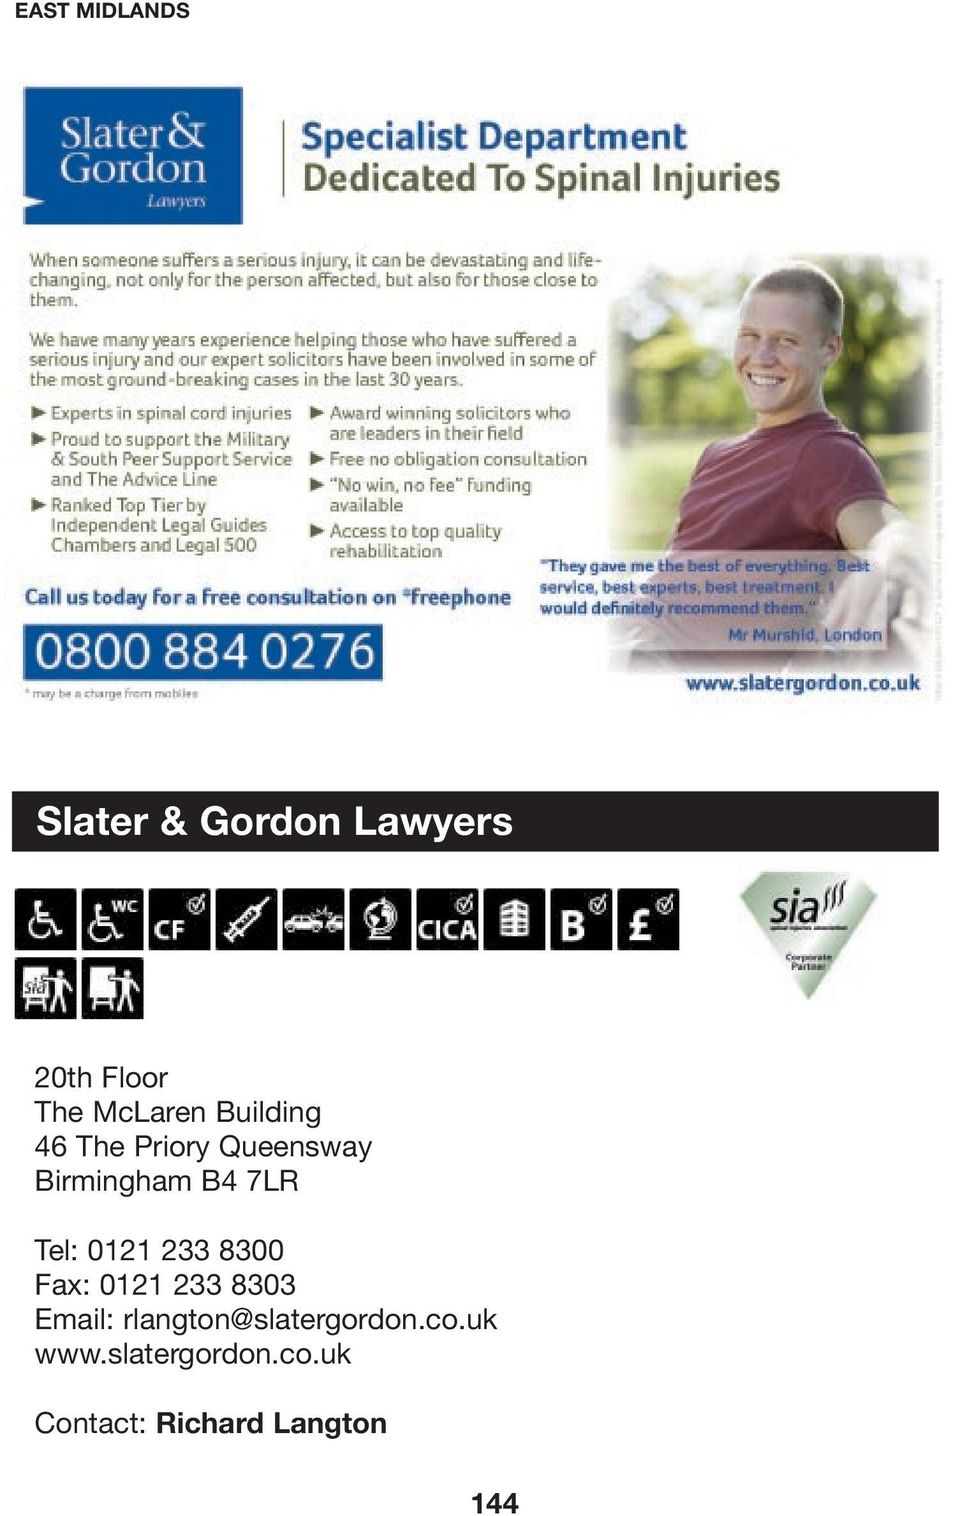 8300 Fax: 0121 233 8303 Email: rlangton@slatergordon.co.